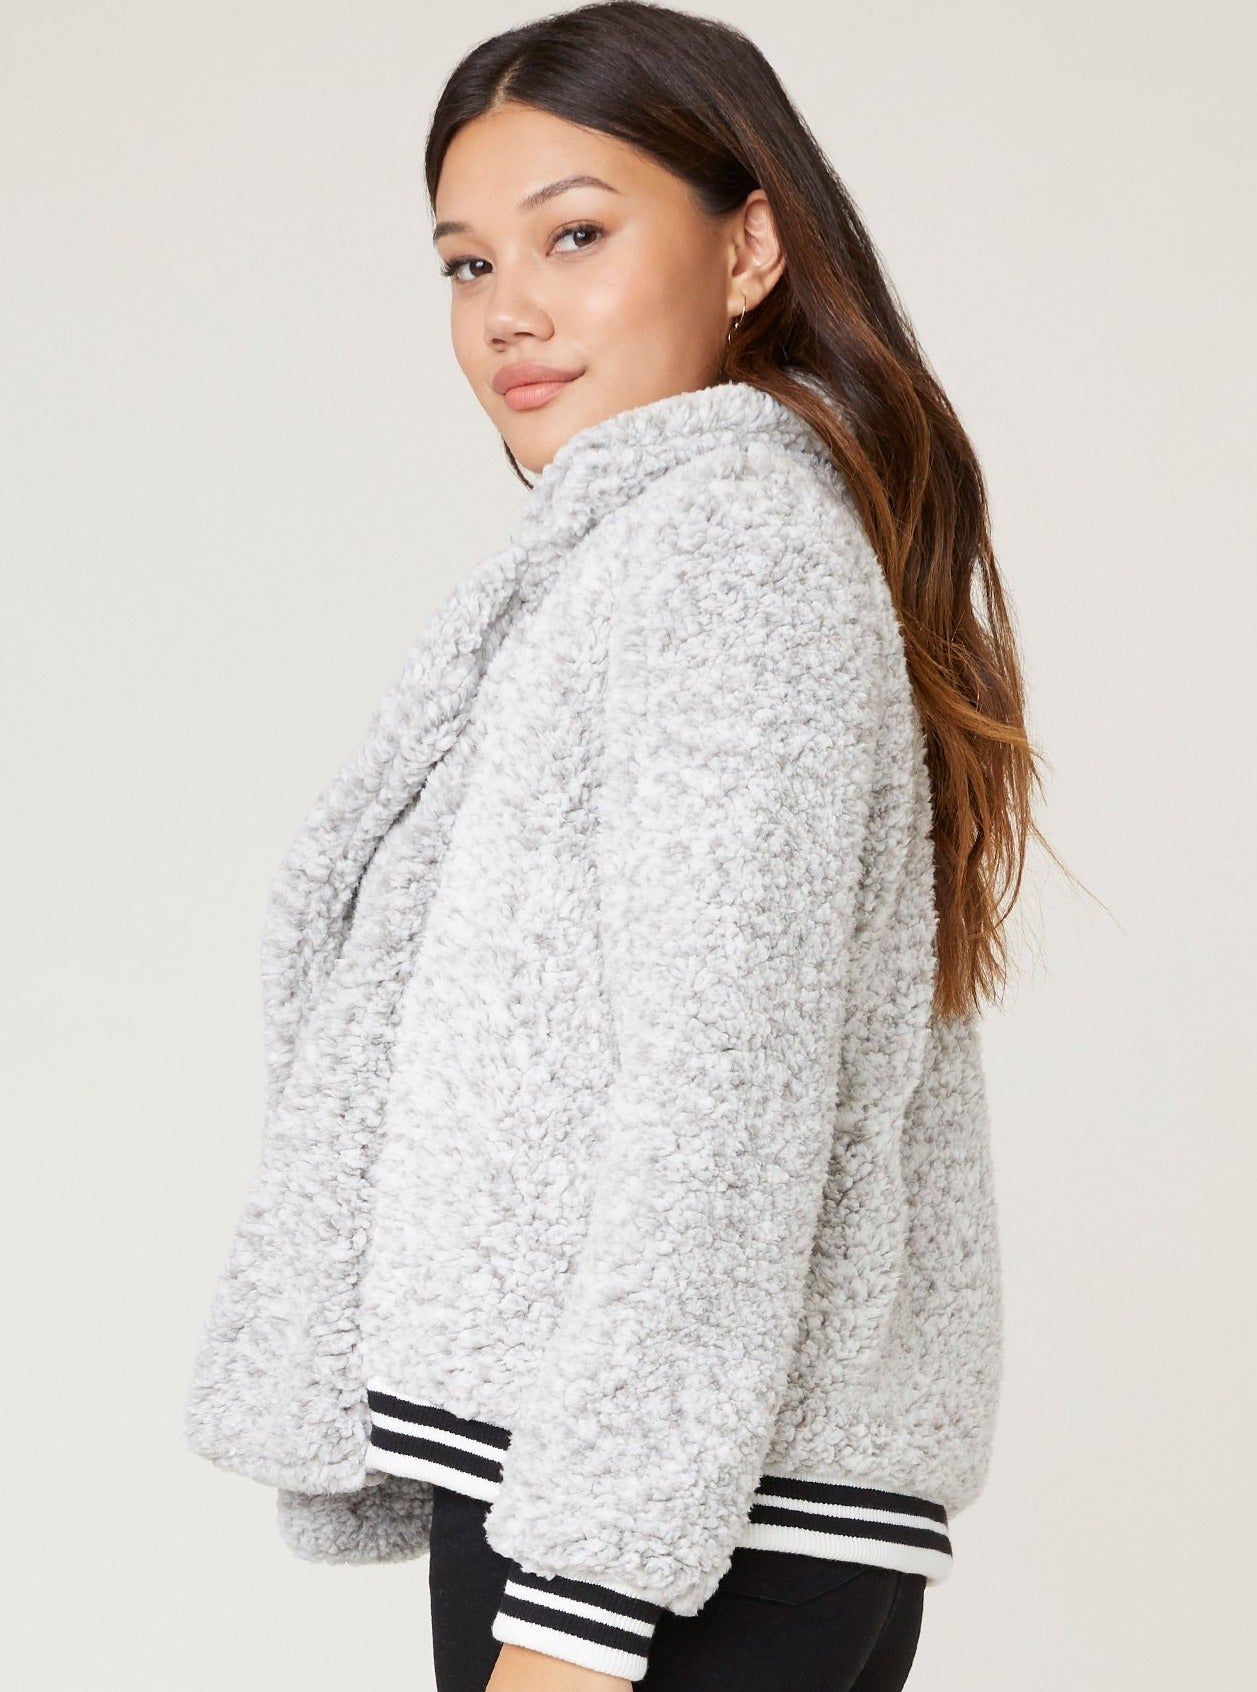 SHEAR GENIUS Shearling Jacket